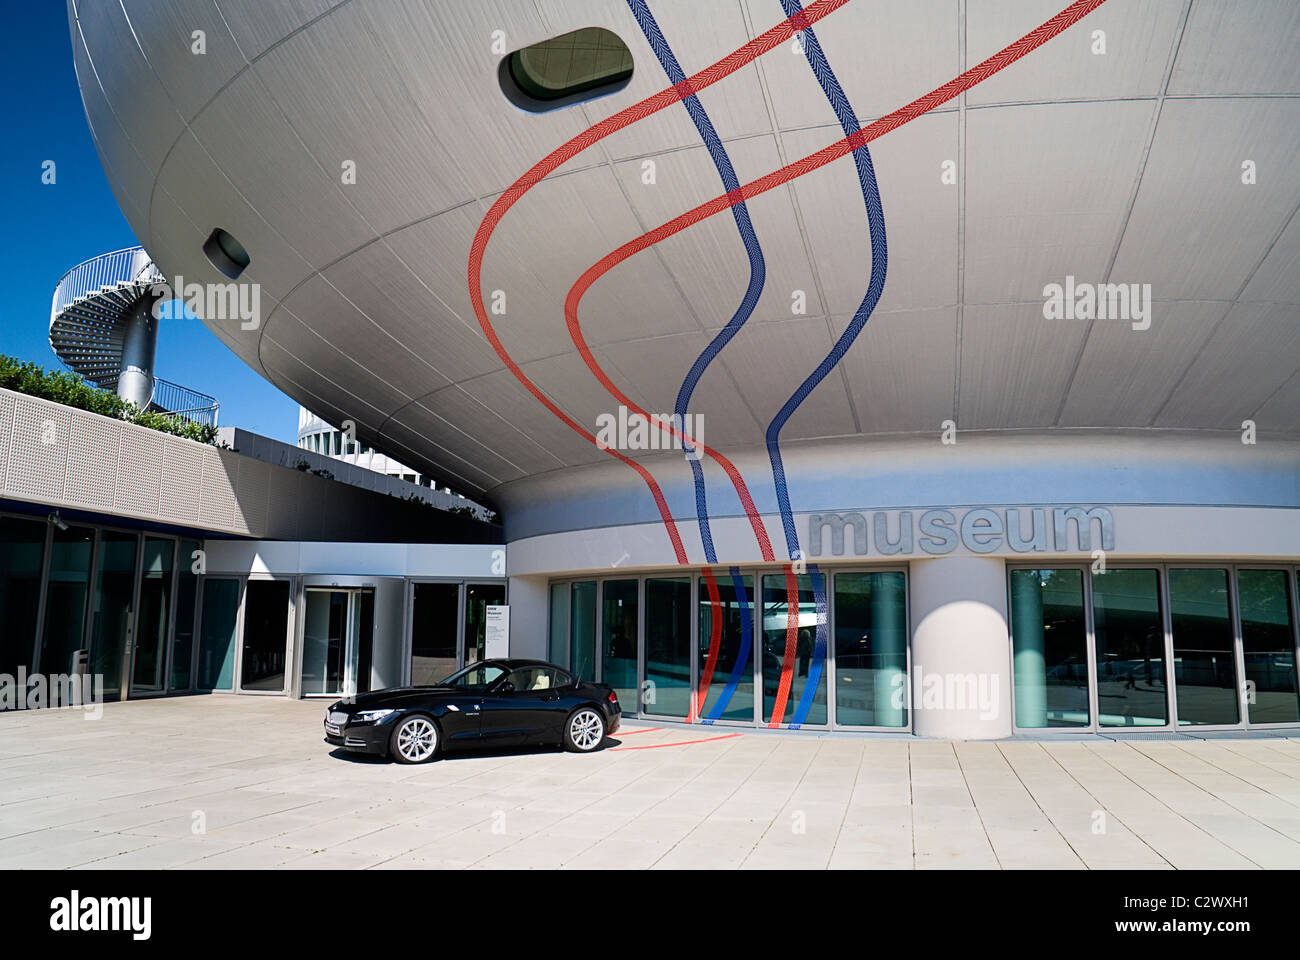 Germany, Bavaria, Munich, BMW Headquarters, The BMW Museum, Entrance with car outside. - Stock Image